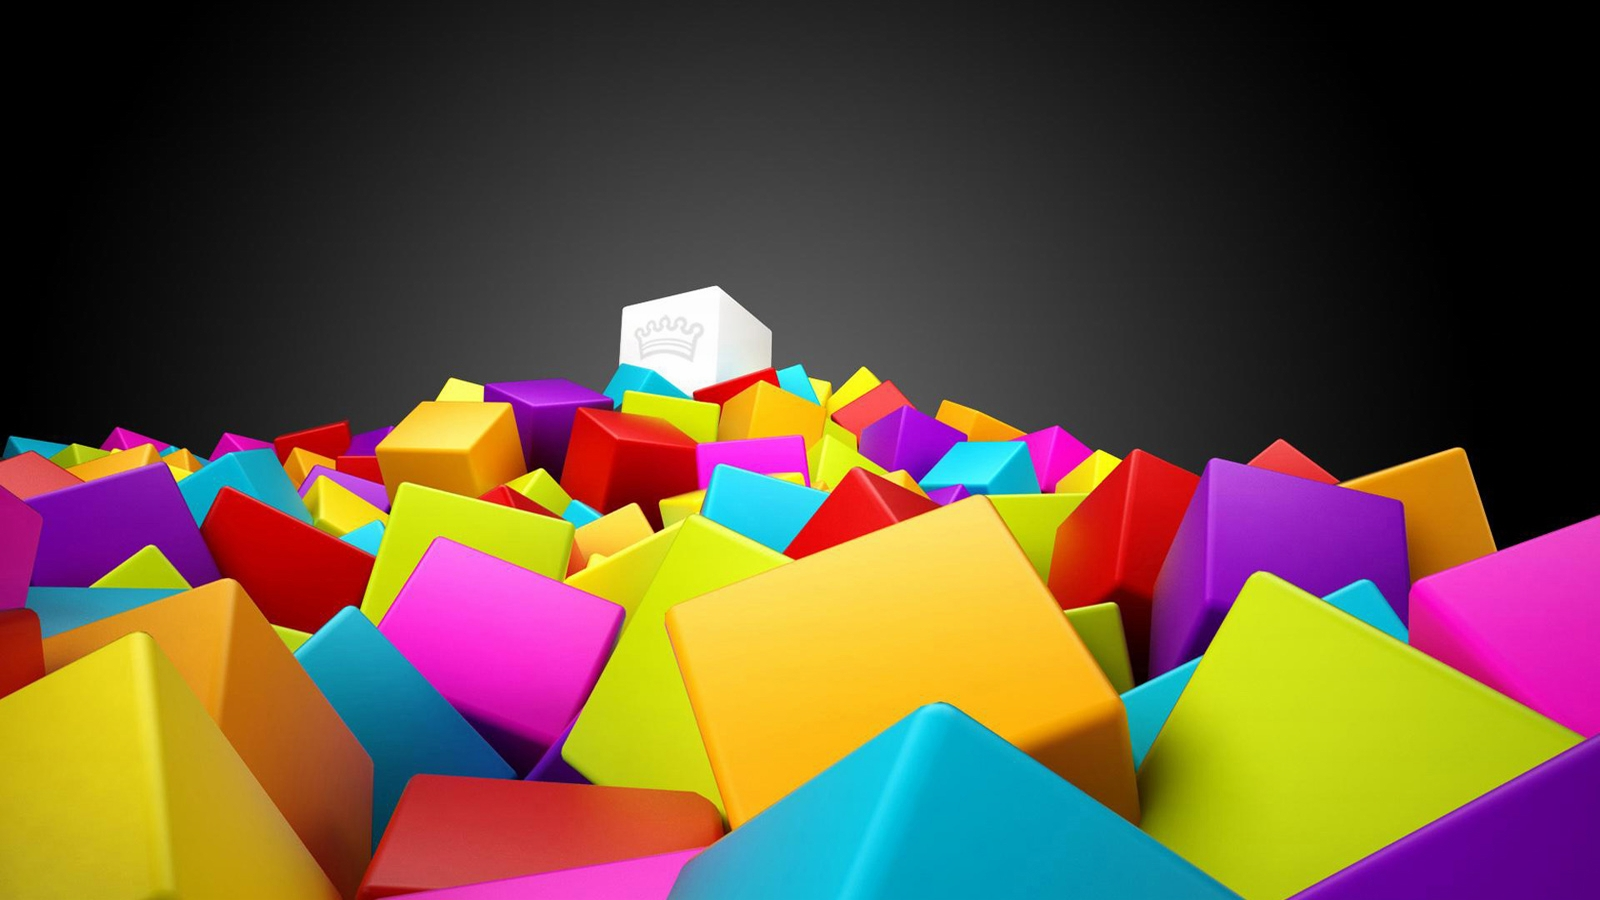 Awesome 3D Cubes and Cube King HD Wallpaper Hd Wallpaper 1600x900